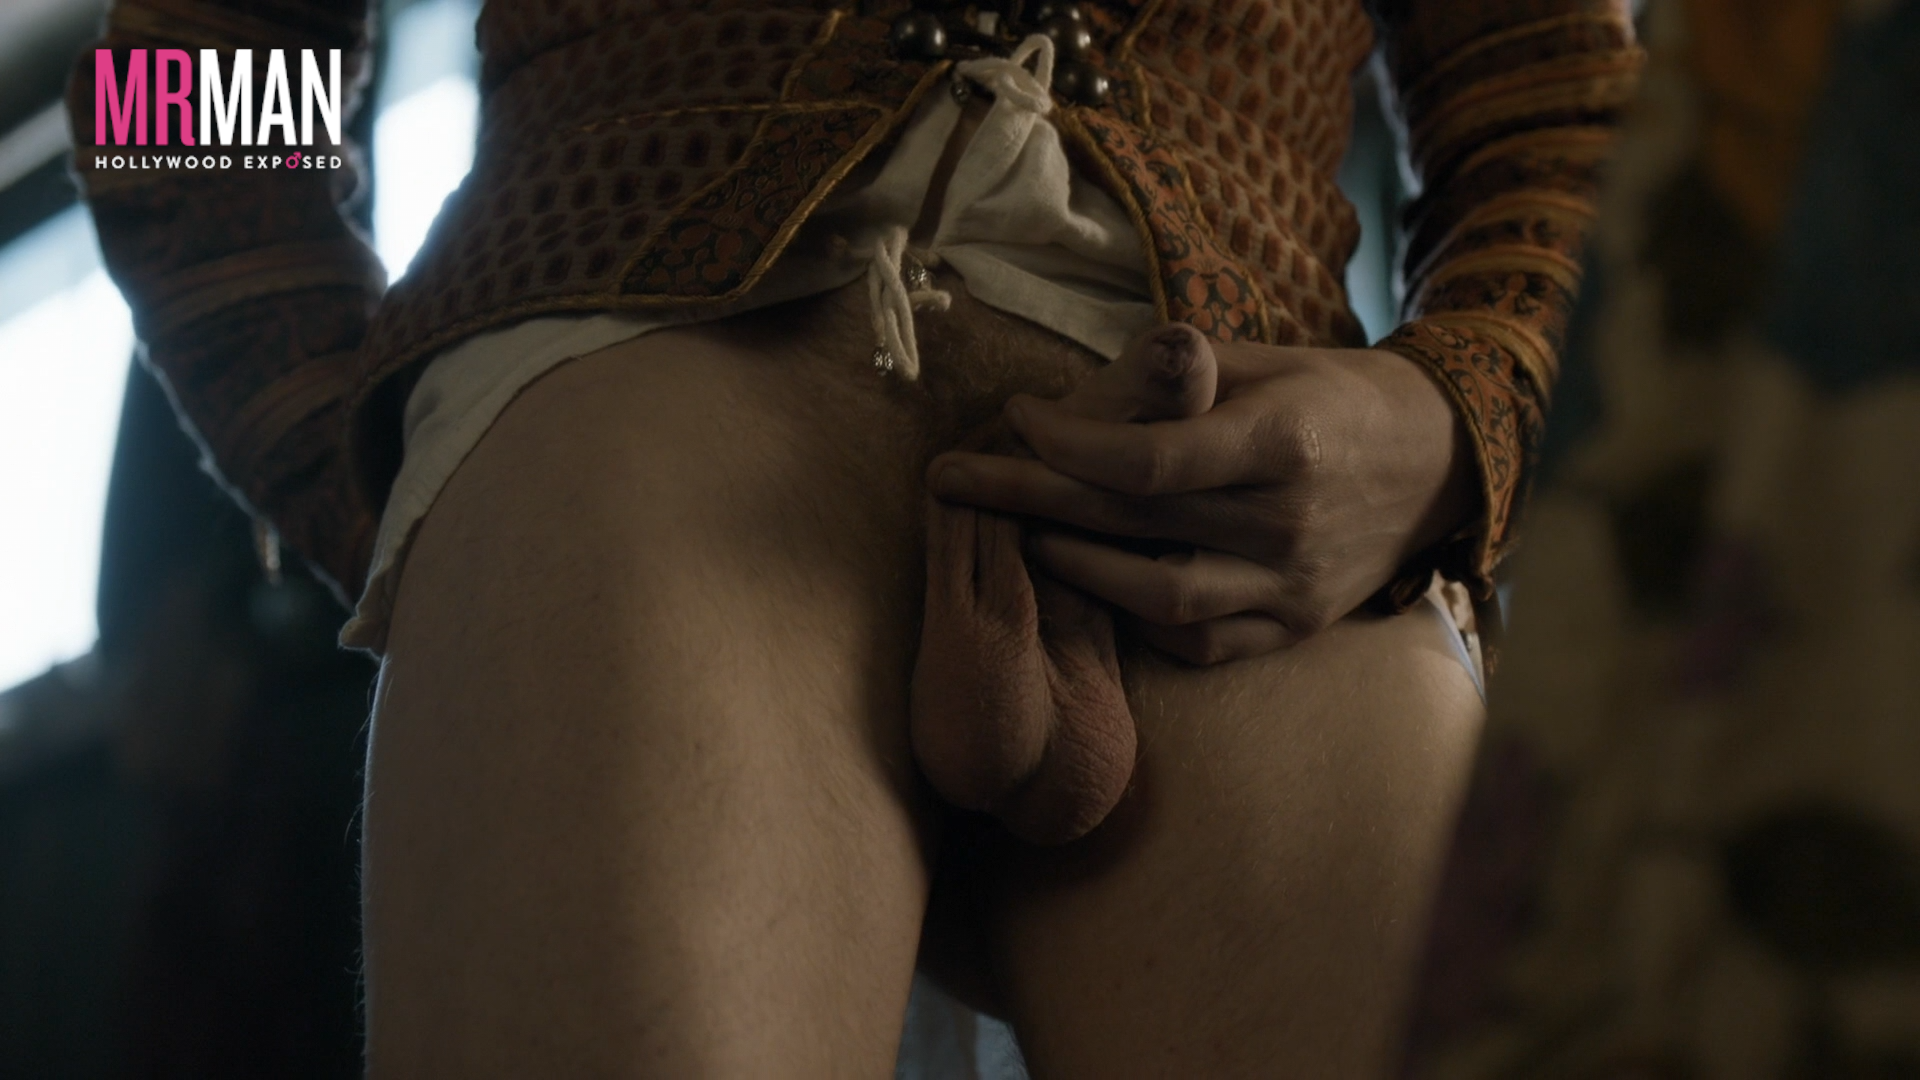 Top 5 Game of Thrones Nude Scenes - RANKED